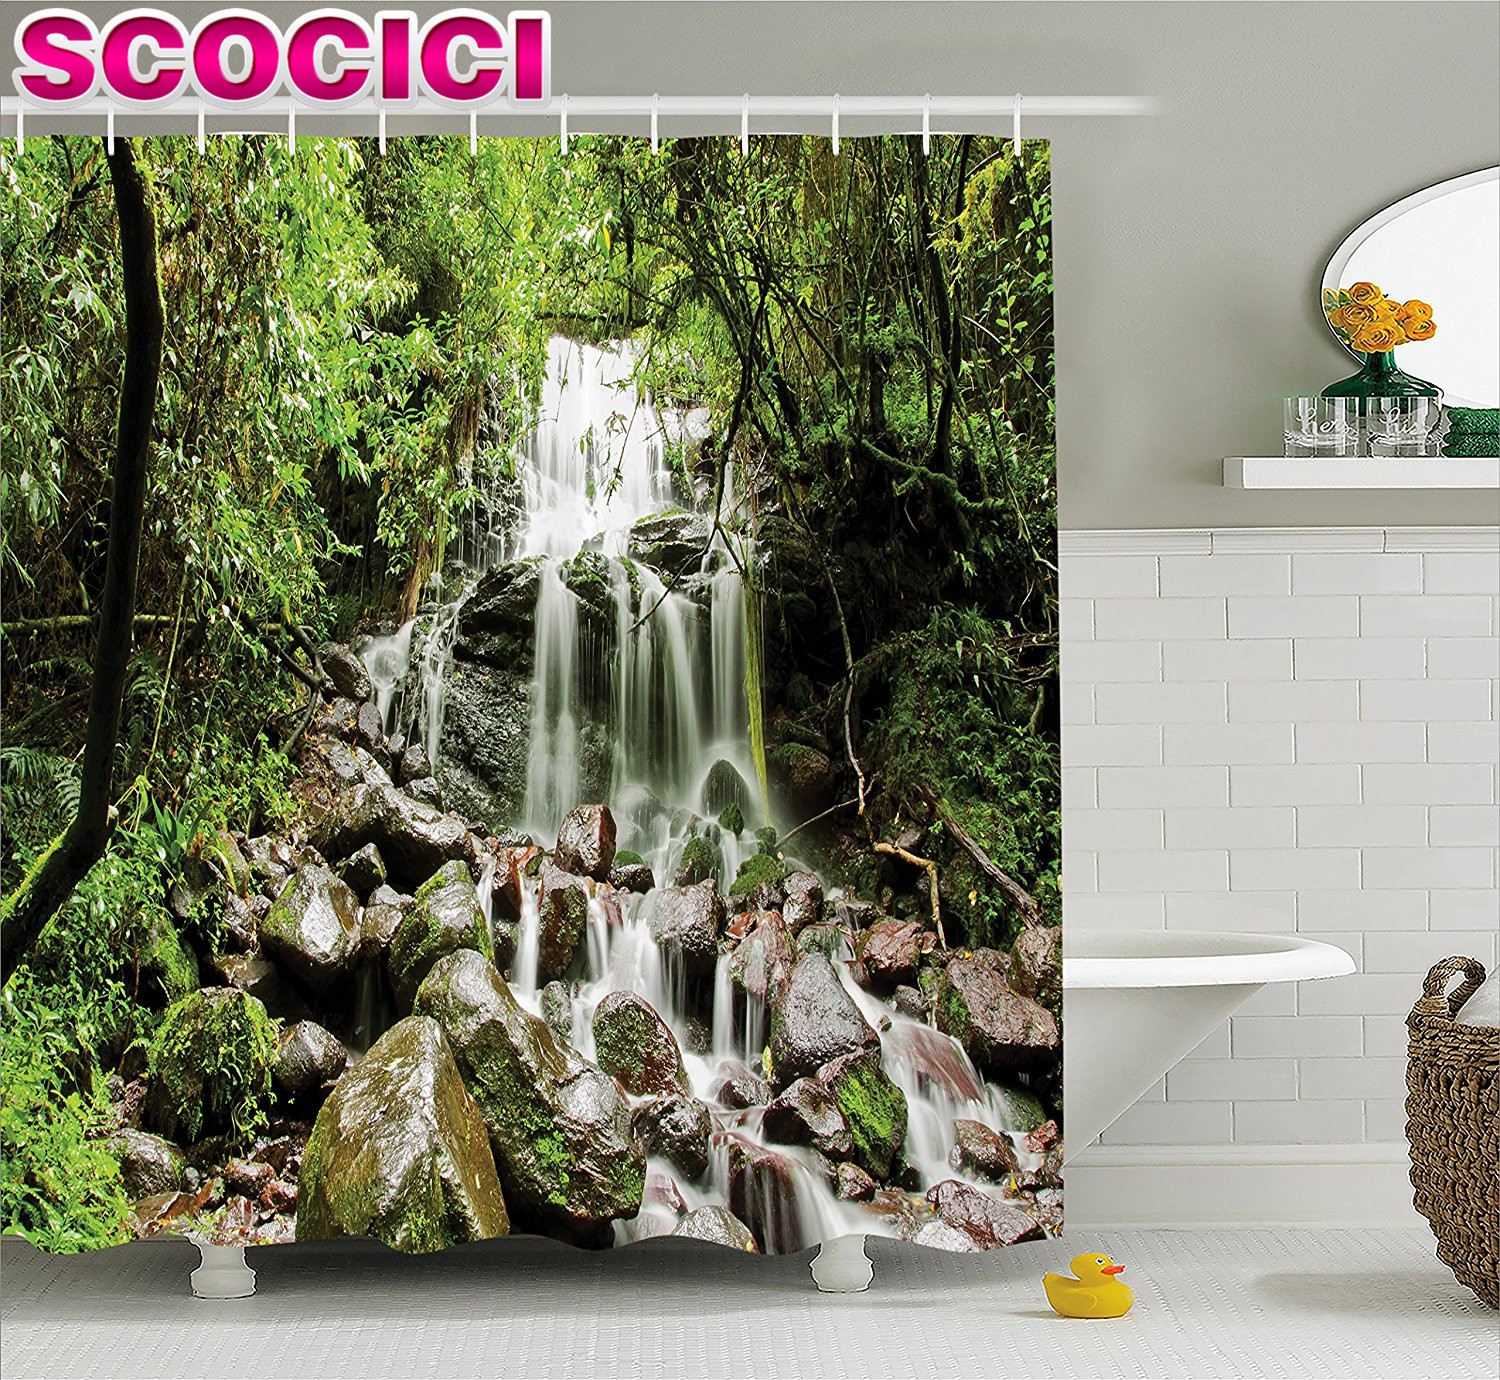 Waterfall Decor Shower Curtain Rain Forest With Waterfall On Rock Stones  Foliage Dense Lush Habitat Climate Art Fabric Bathroom